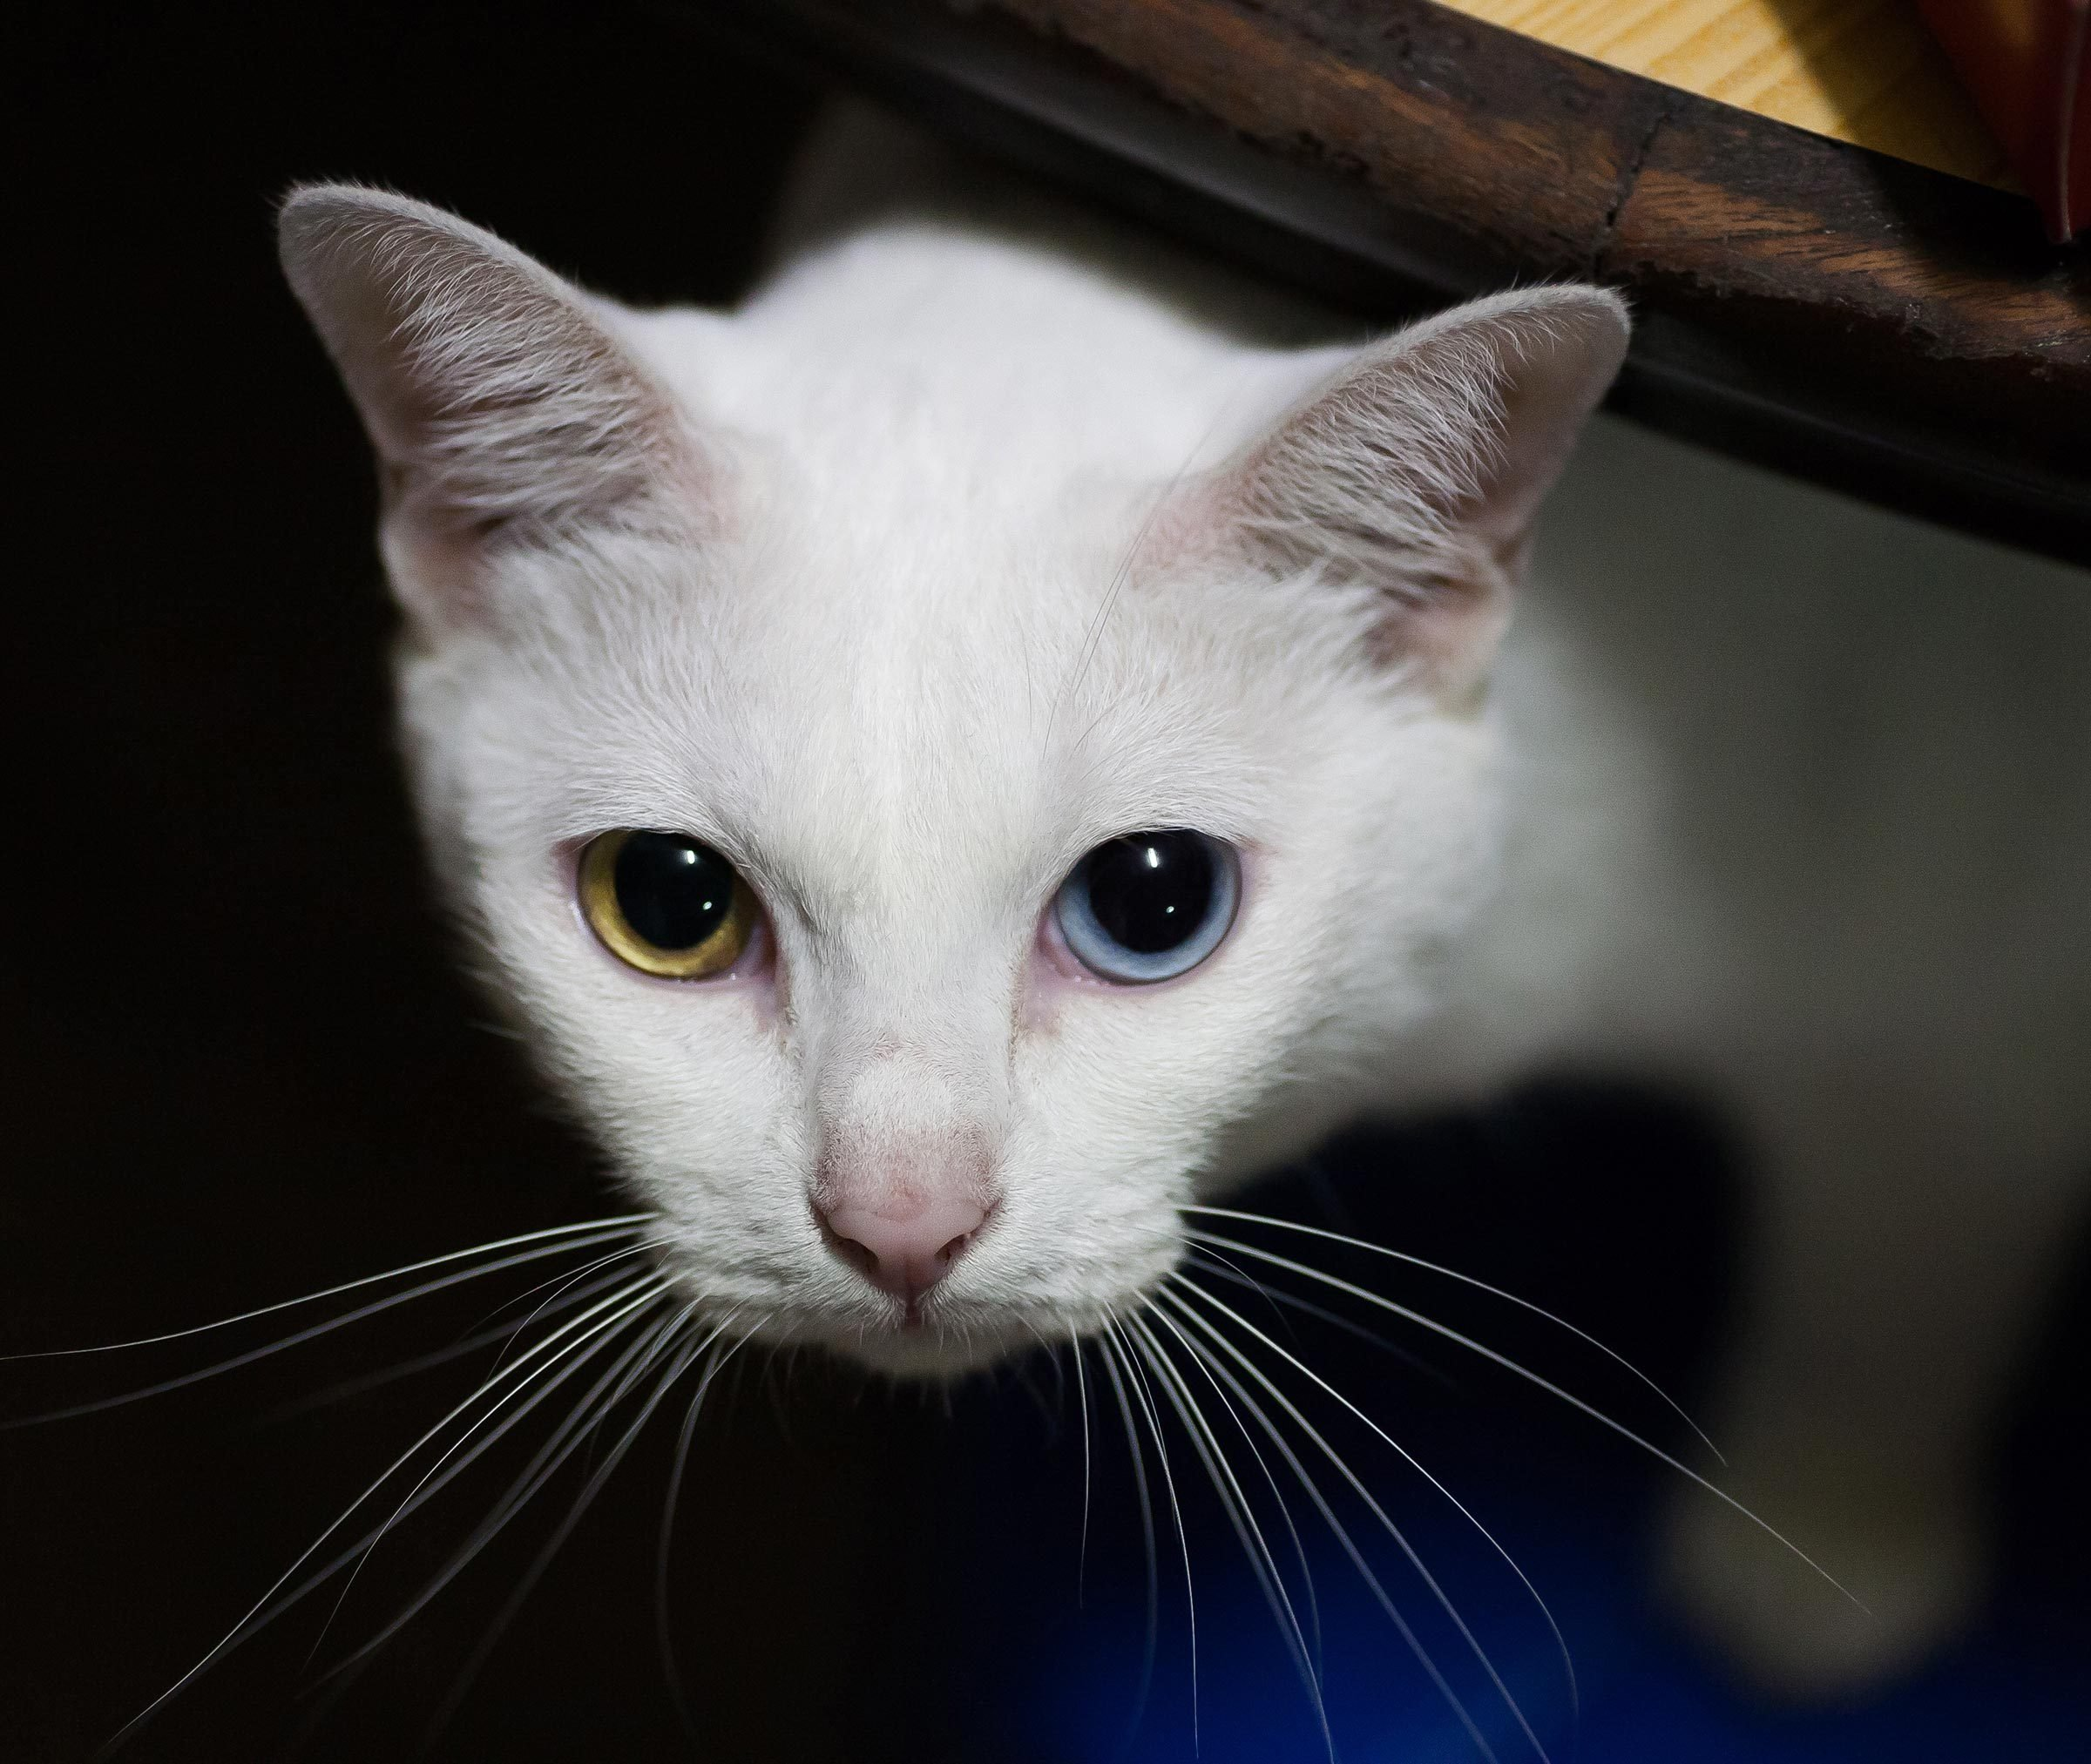 Pure White Cat with odd eyes , Khao Manee cat, Diamond Eye cat , This is rare cat breeds and very cute in Thailand.